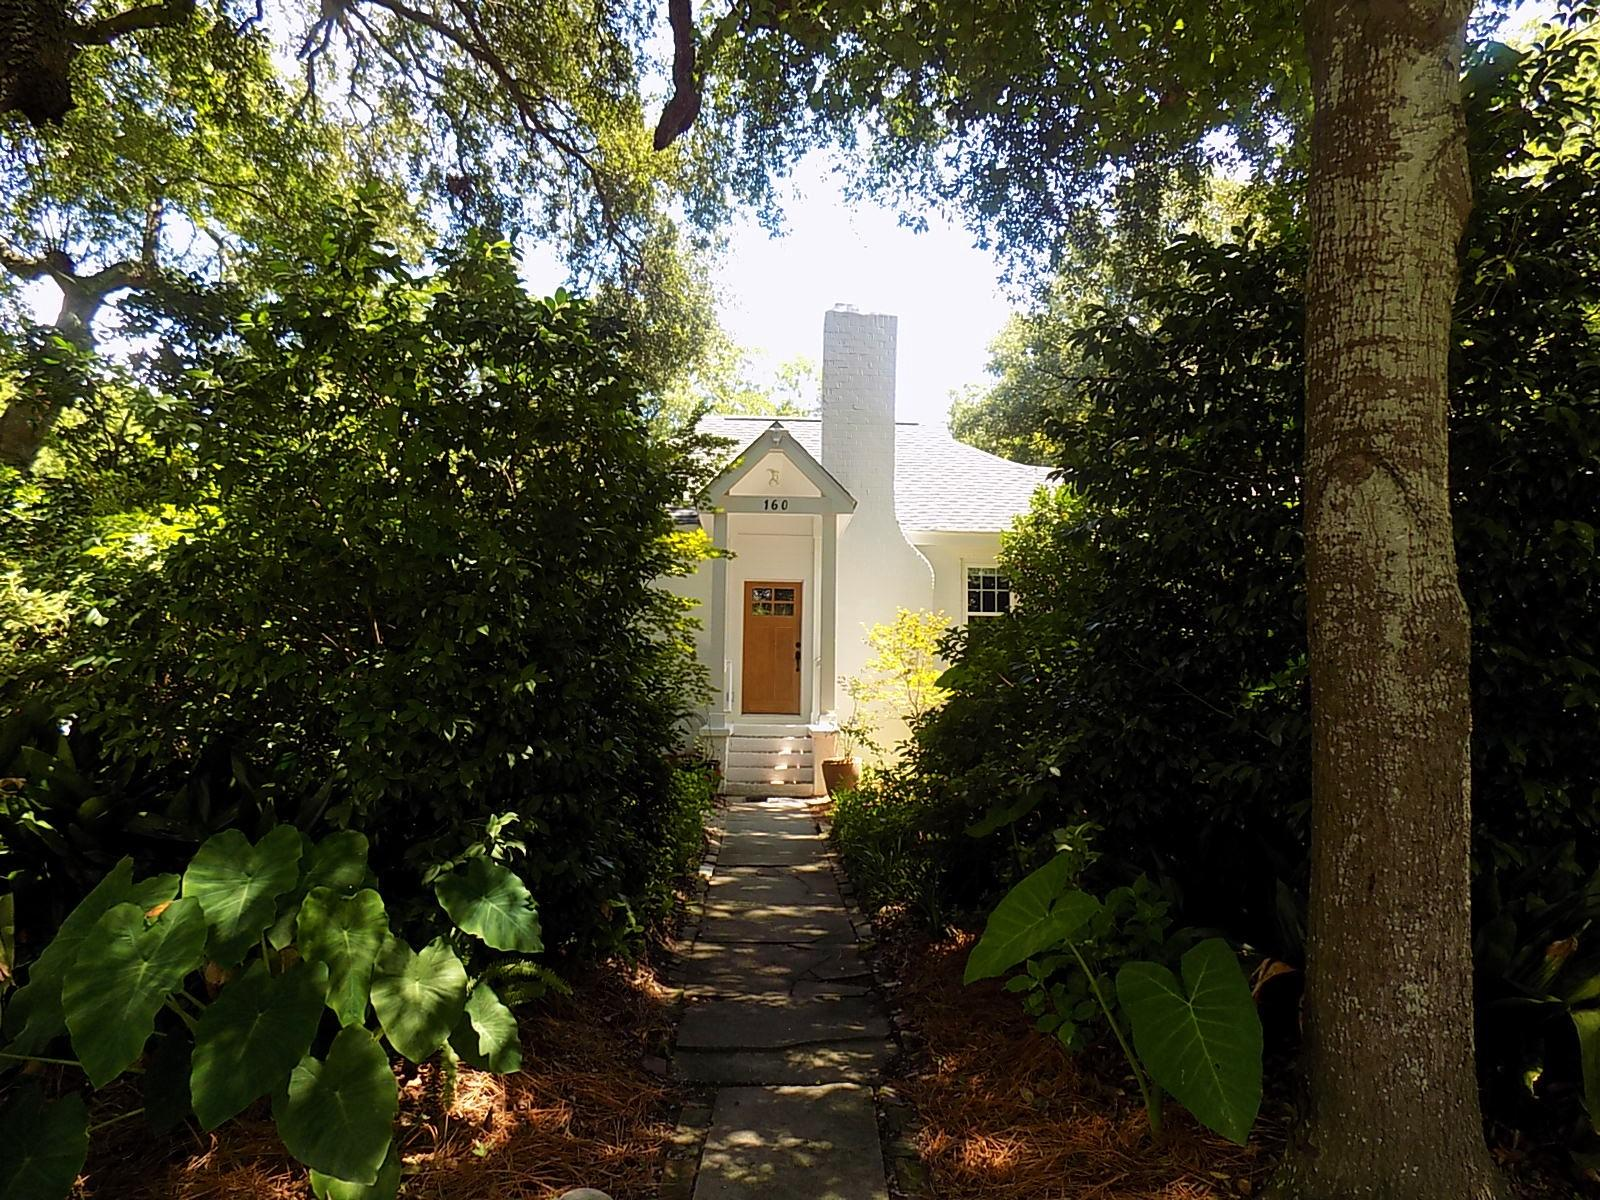 160 &162 Grimball Avenue Charleston, SC 29412